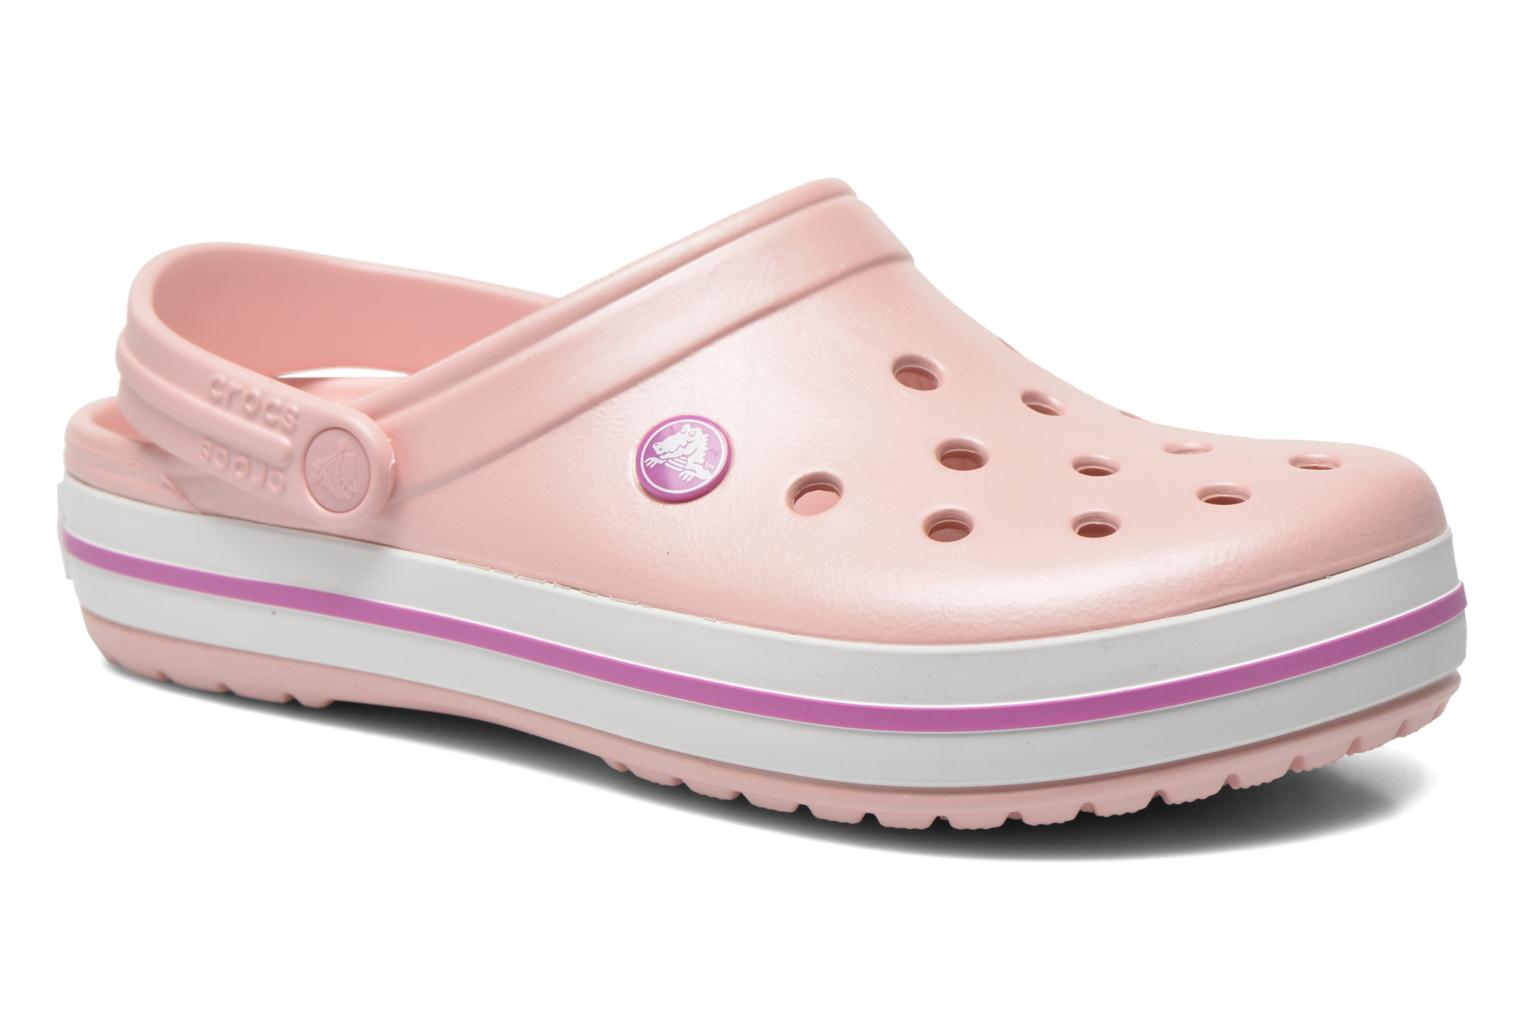 c5709143276d7 ... Mules clogs Crocs Crocband W Pink detailed view Pair view hot sales  ac84a e345b  Mules clogs Crocs Classic Mammoth Luxe Radiant Clog ...